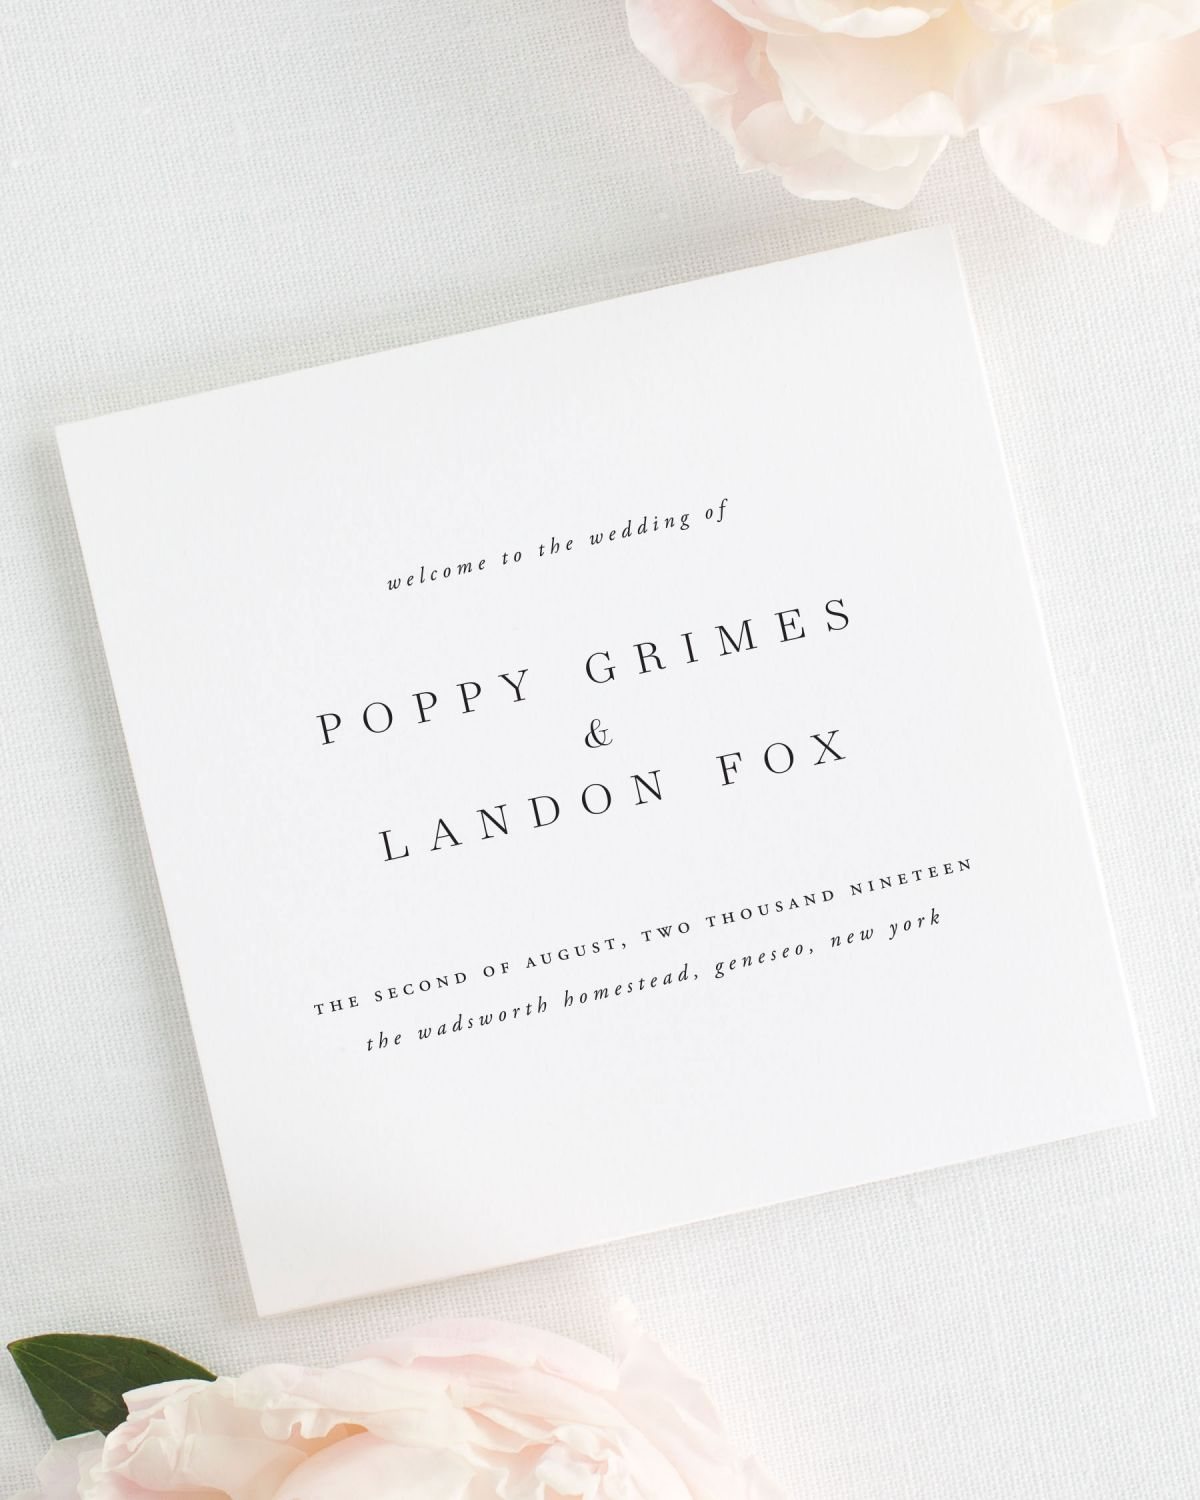 Poppy Wedding Programs Wedding Programs By Shine